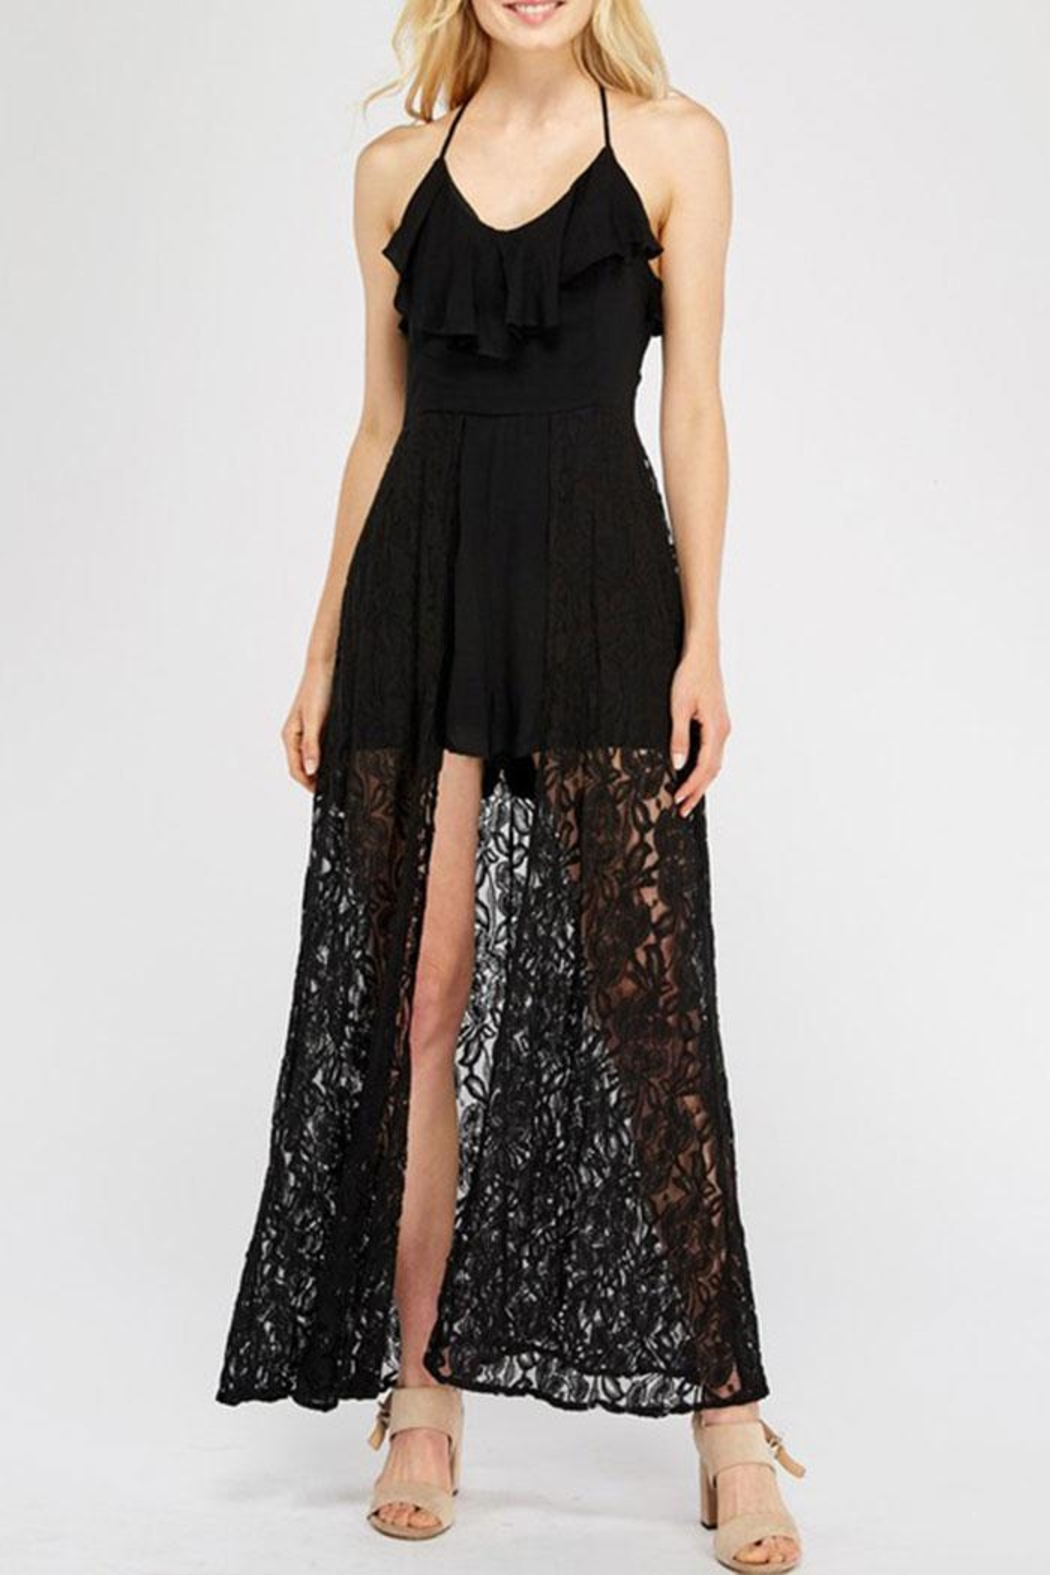 Entro Lace Overlay Halter-Romper - Main Image